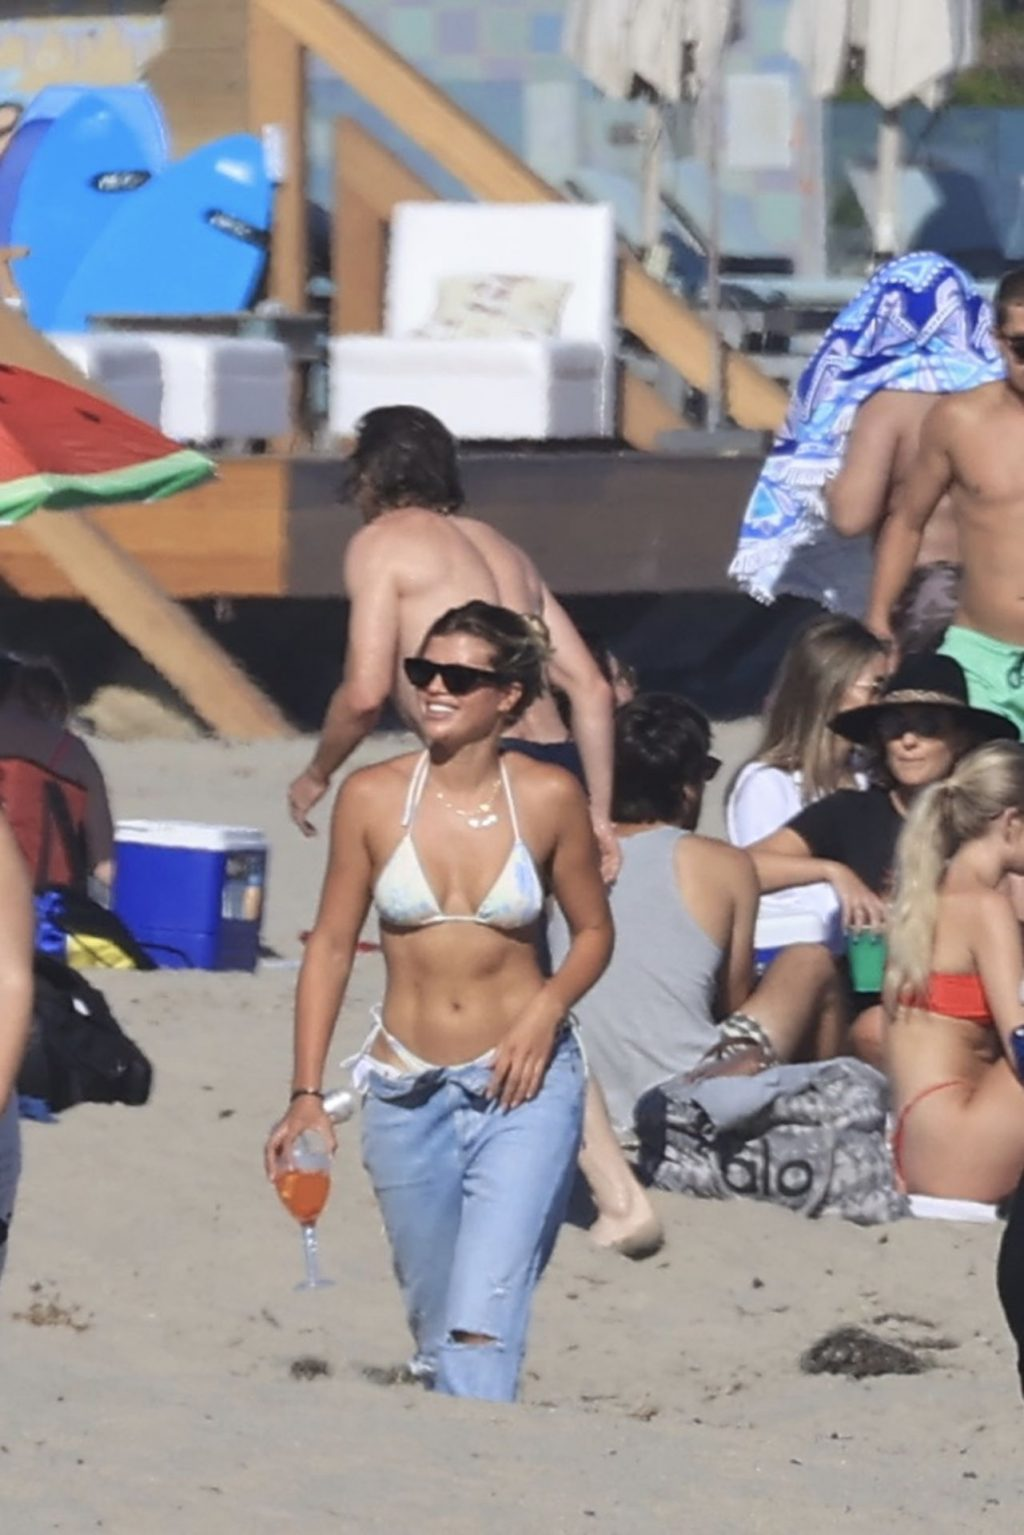 Sofia Richie Shows Off her Abs on the Beach (155 New Photos)